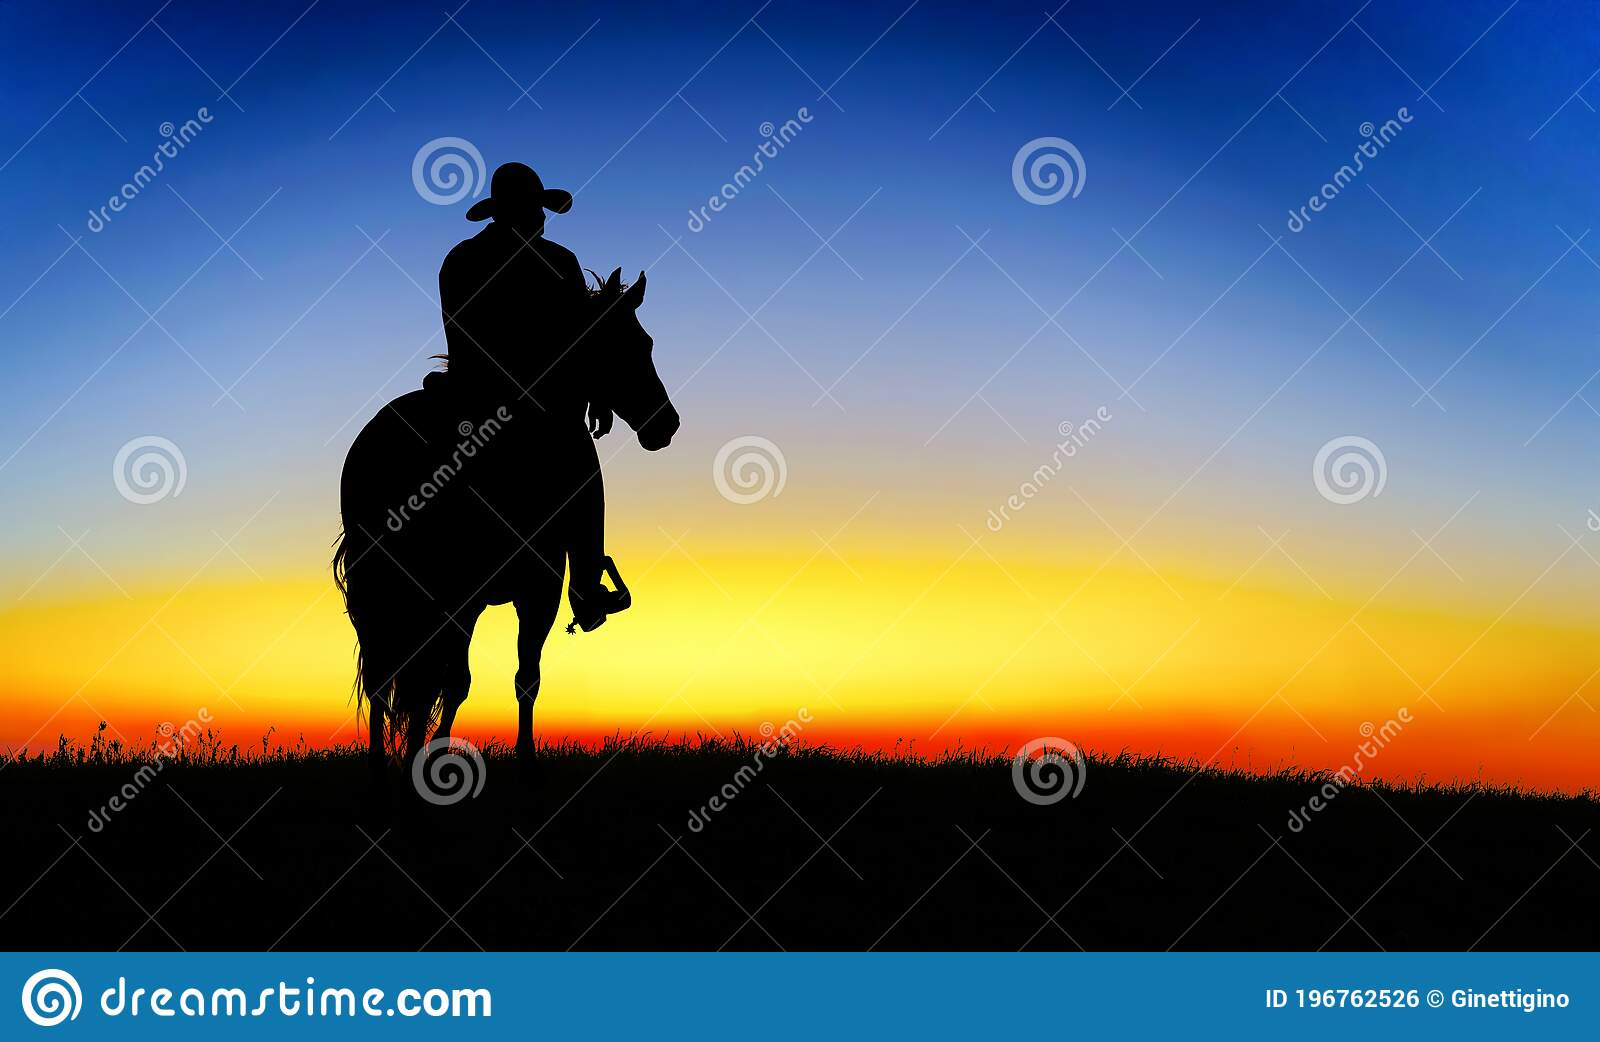 1 031 Cowboy Horse Silhouette Photos Free Royalty Free Stock Photos From Dreamstime